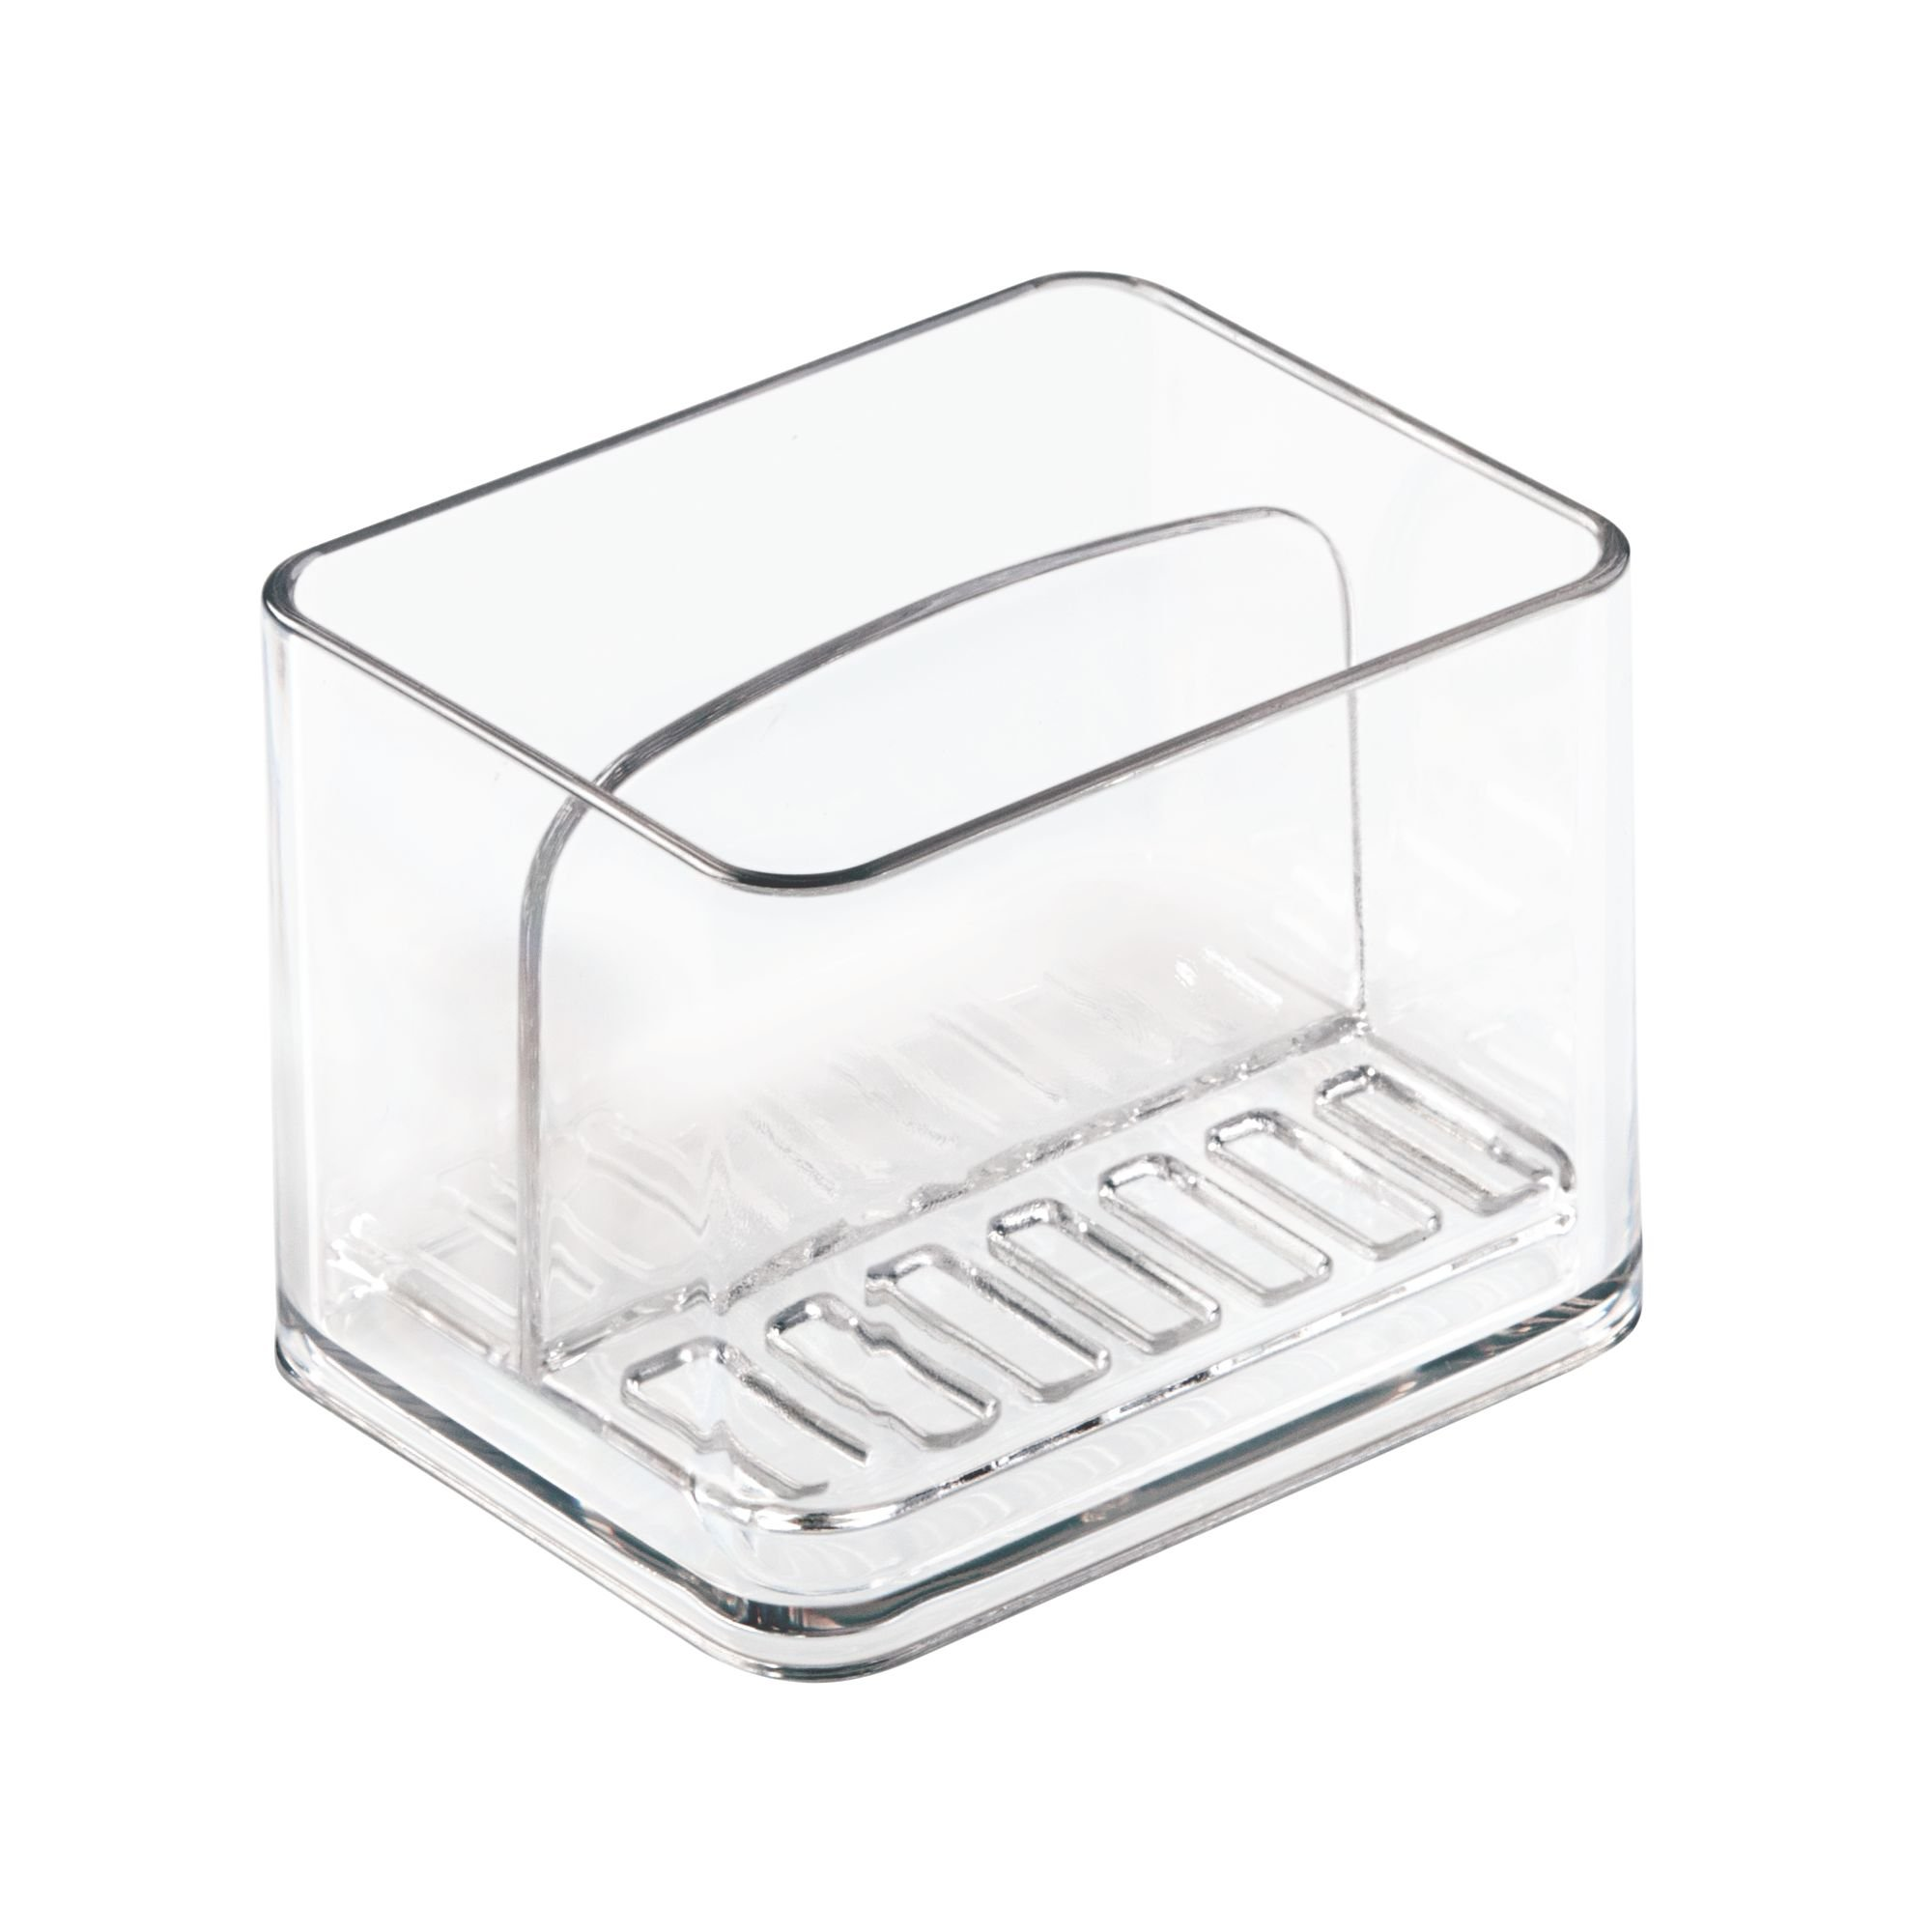 mDesign Kitchen Sink Double Holder for Sponges, Scrubbers - Pack of 2, Clear by mDesign (Image #6)